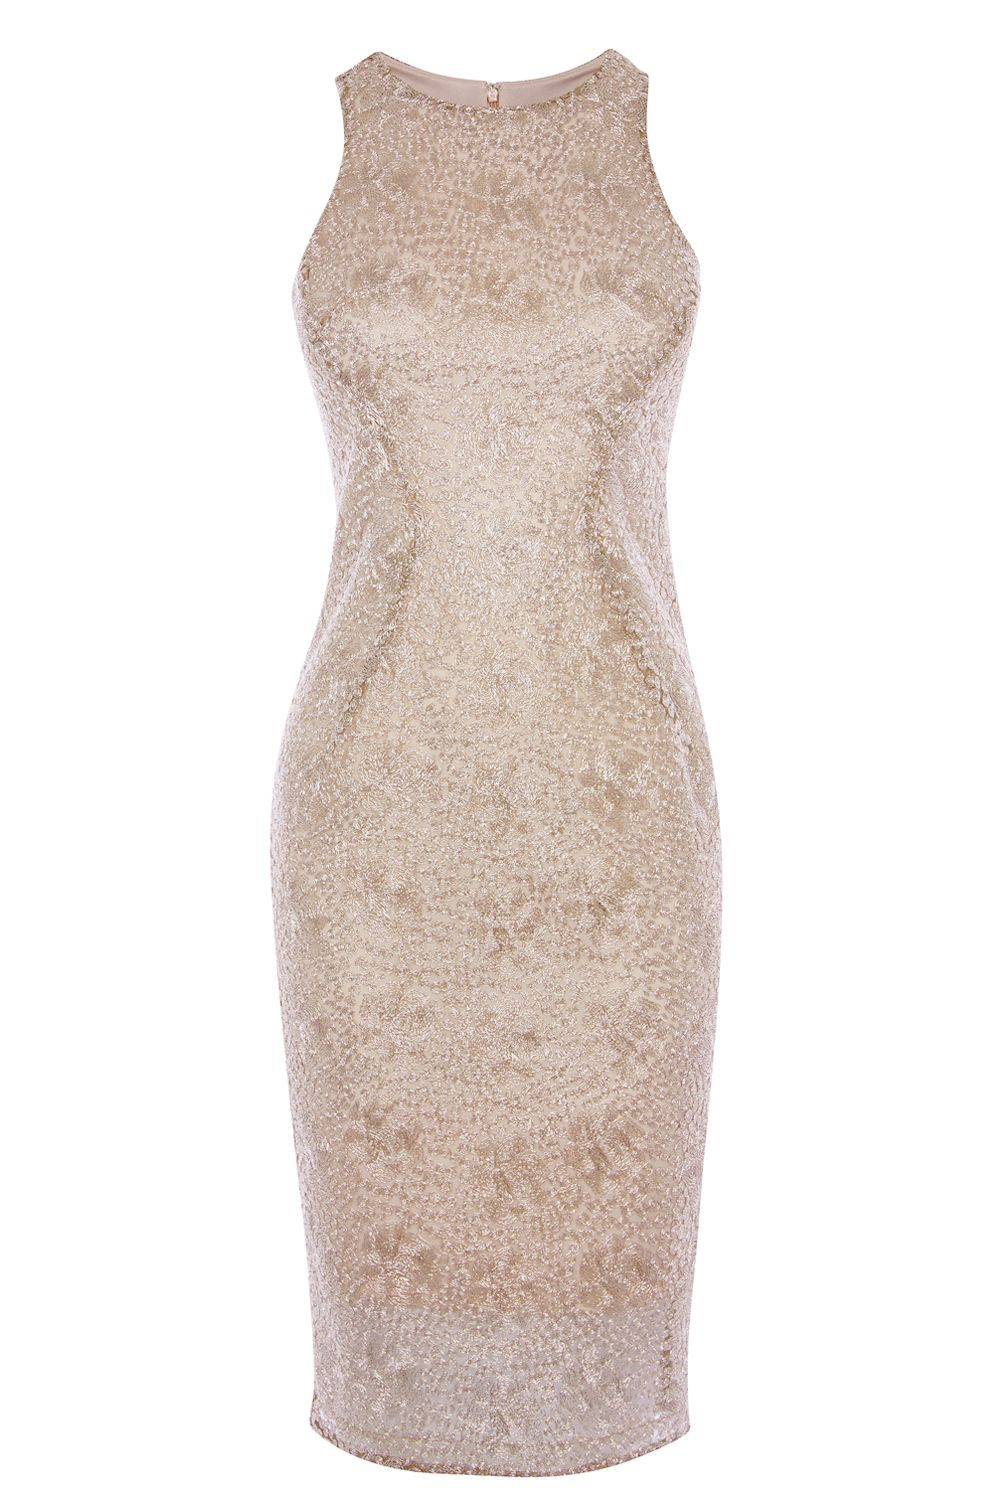 Coast Ostara Metallic Lace Dress, Rose Gold